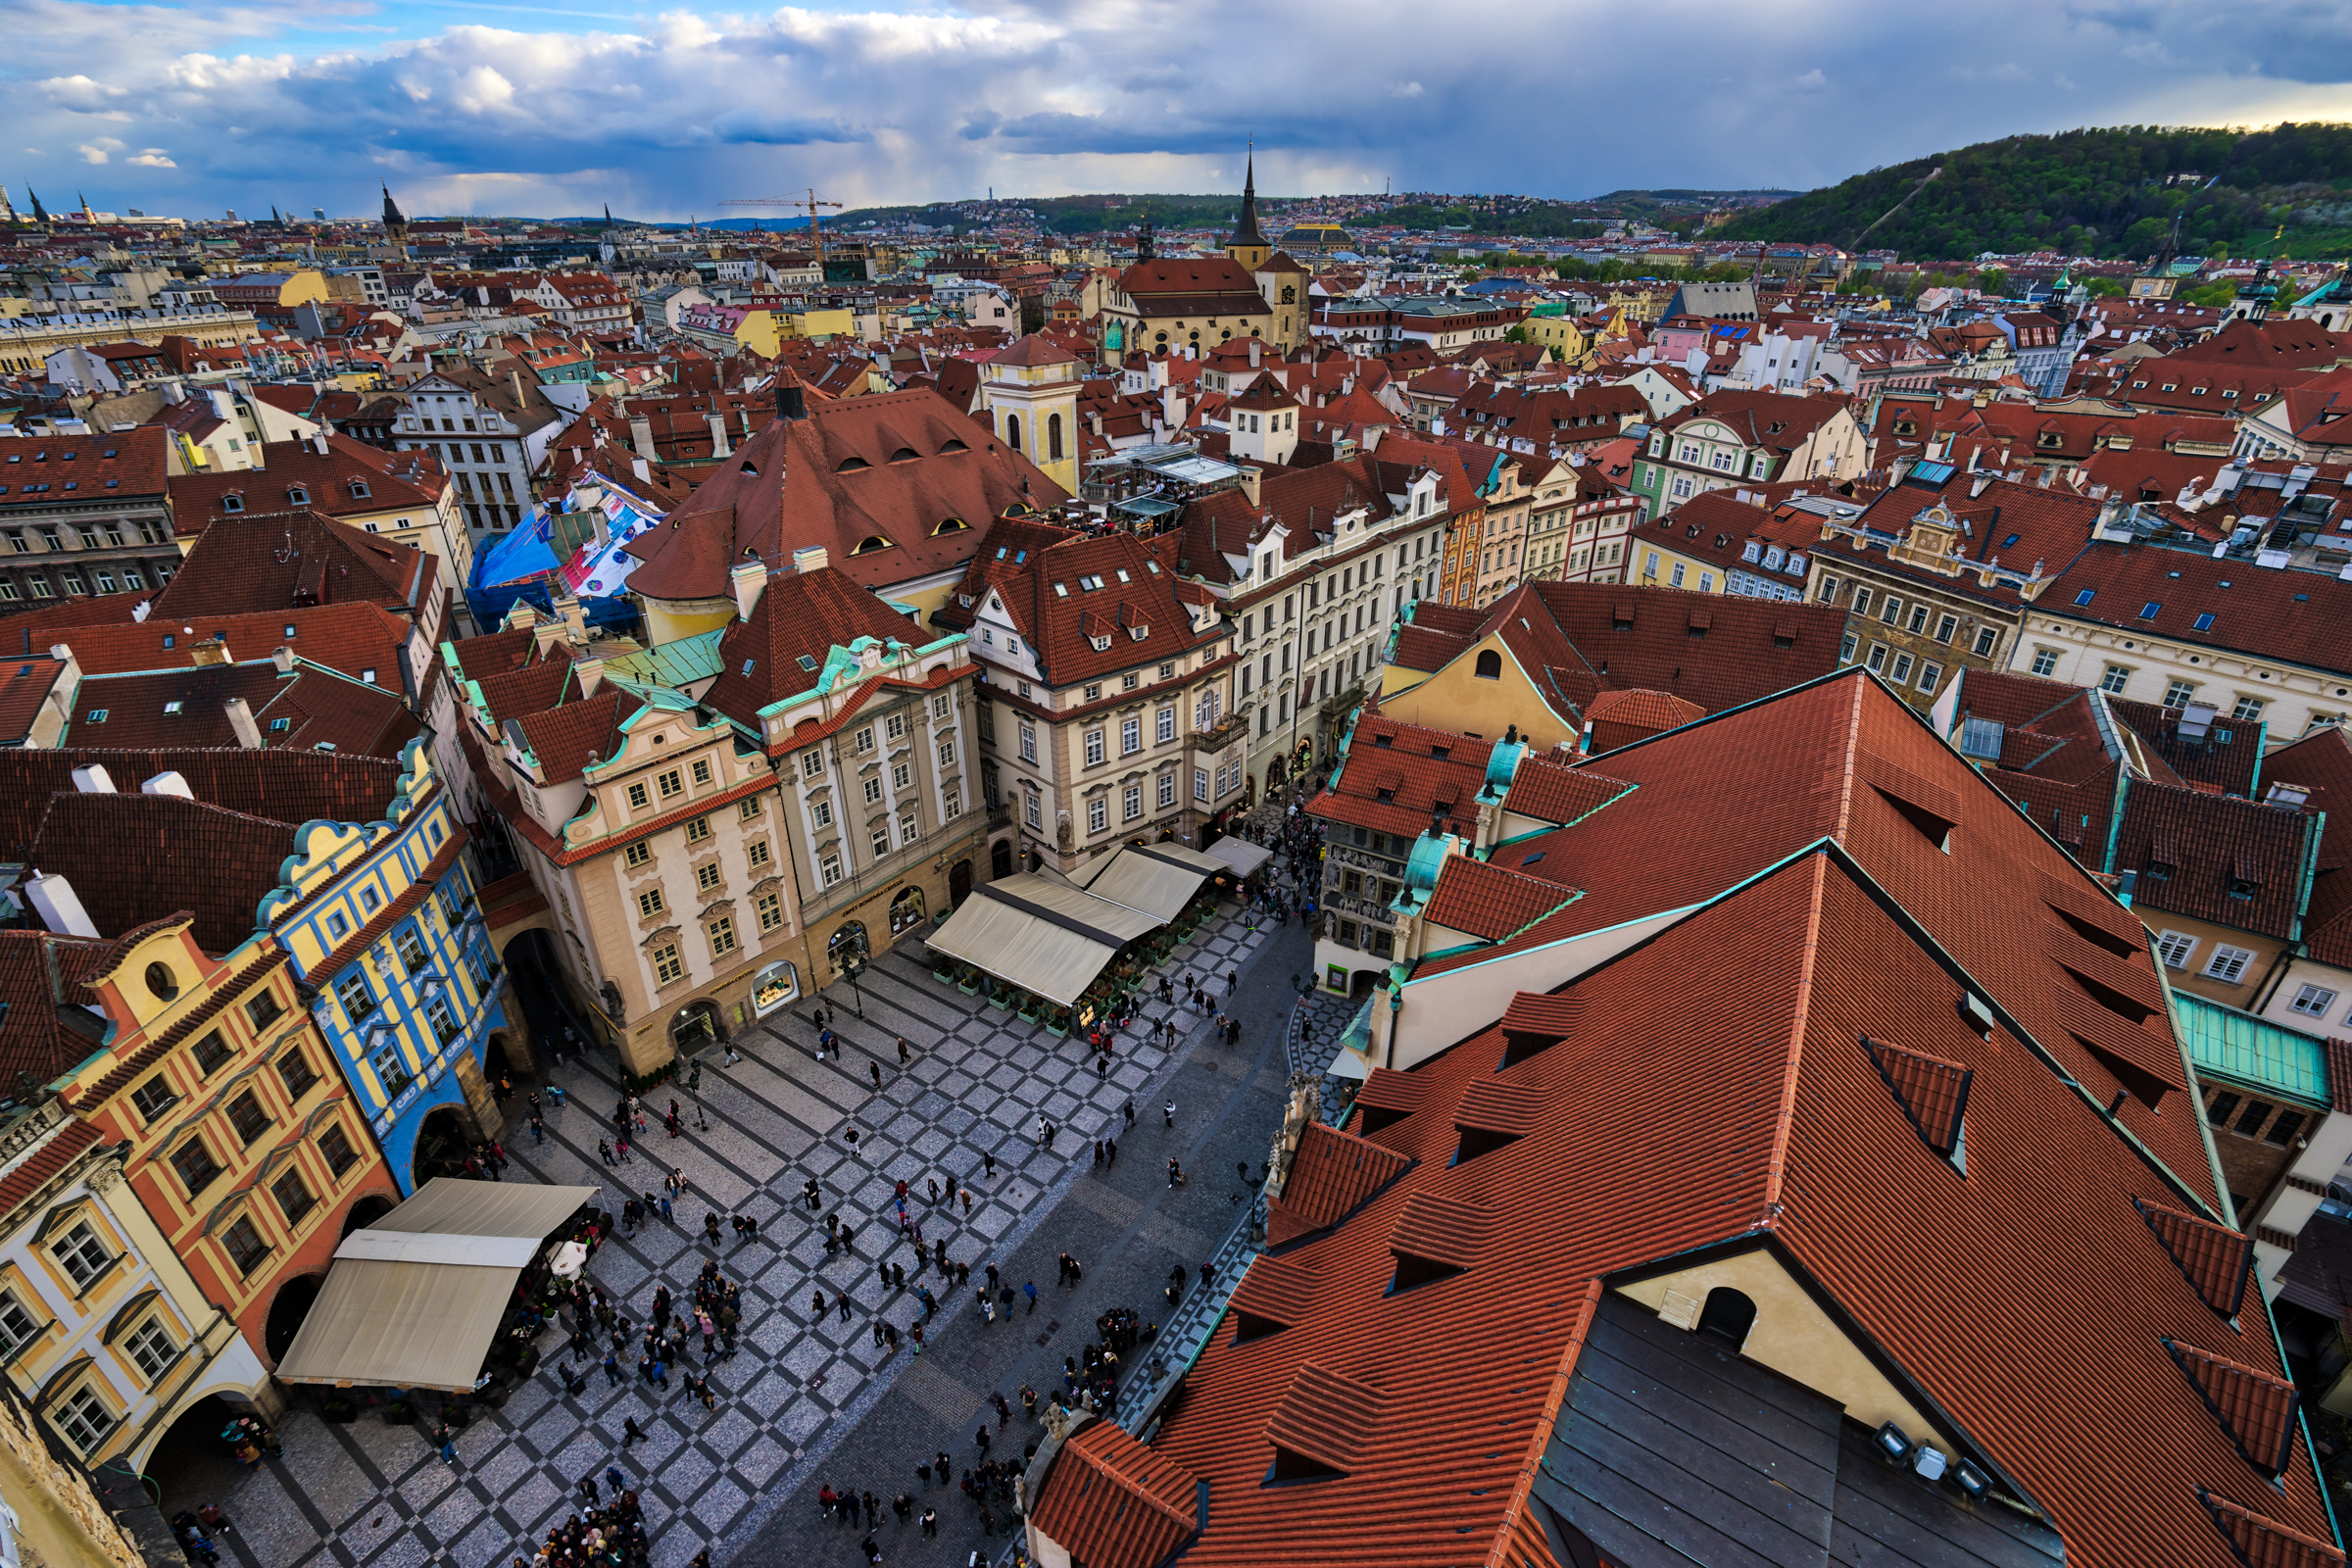 Prague-Old-Town-Square-HDR-tower-view-2a.jpg